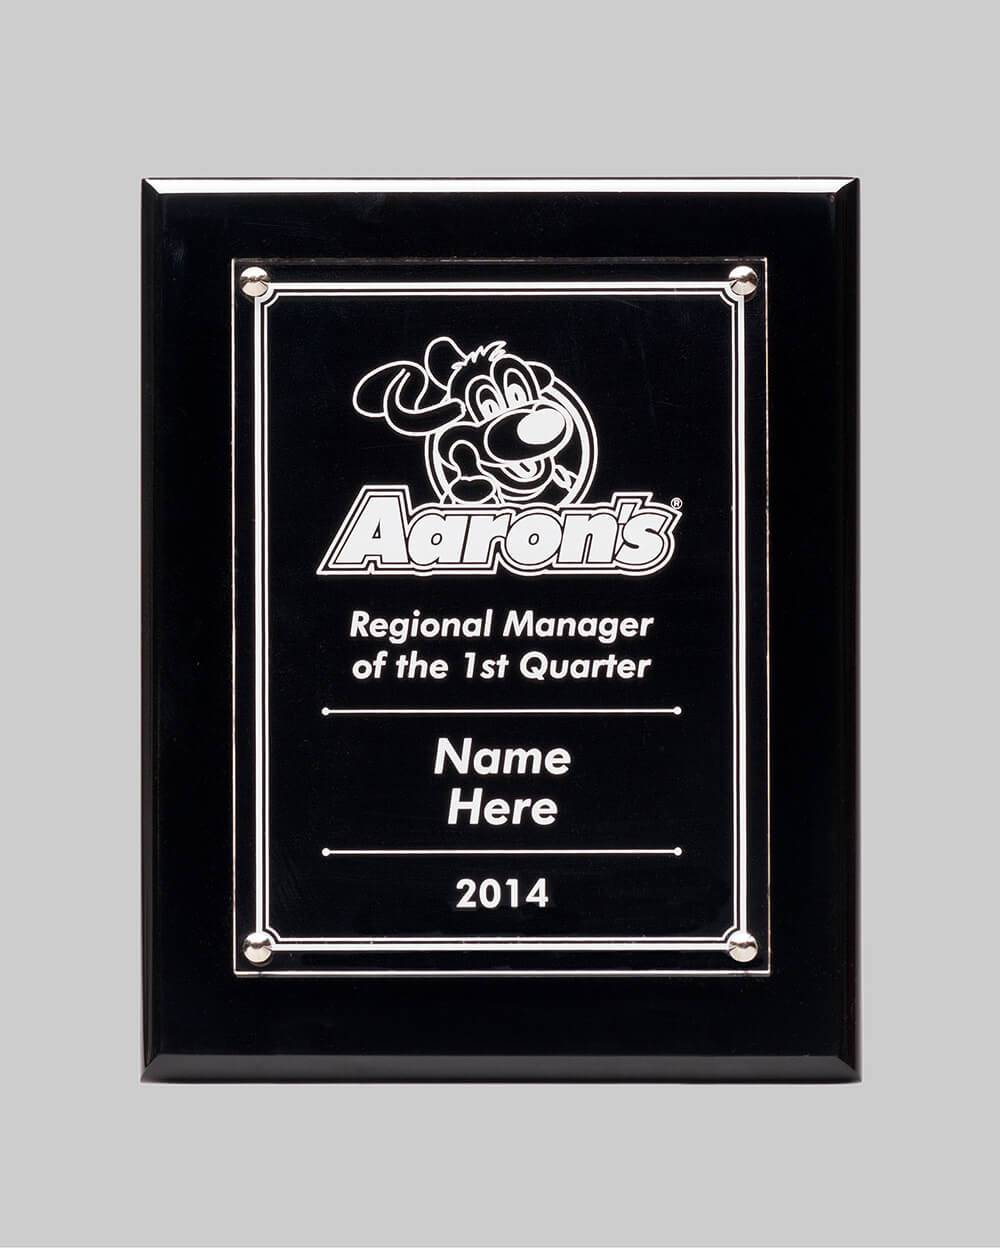 regional manager award plaque by APS for Aaron's